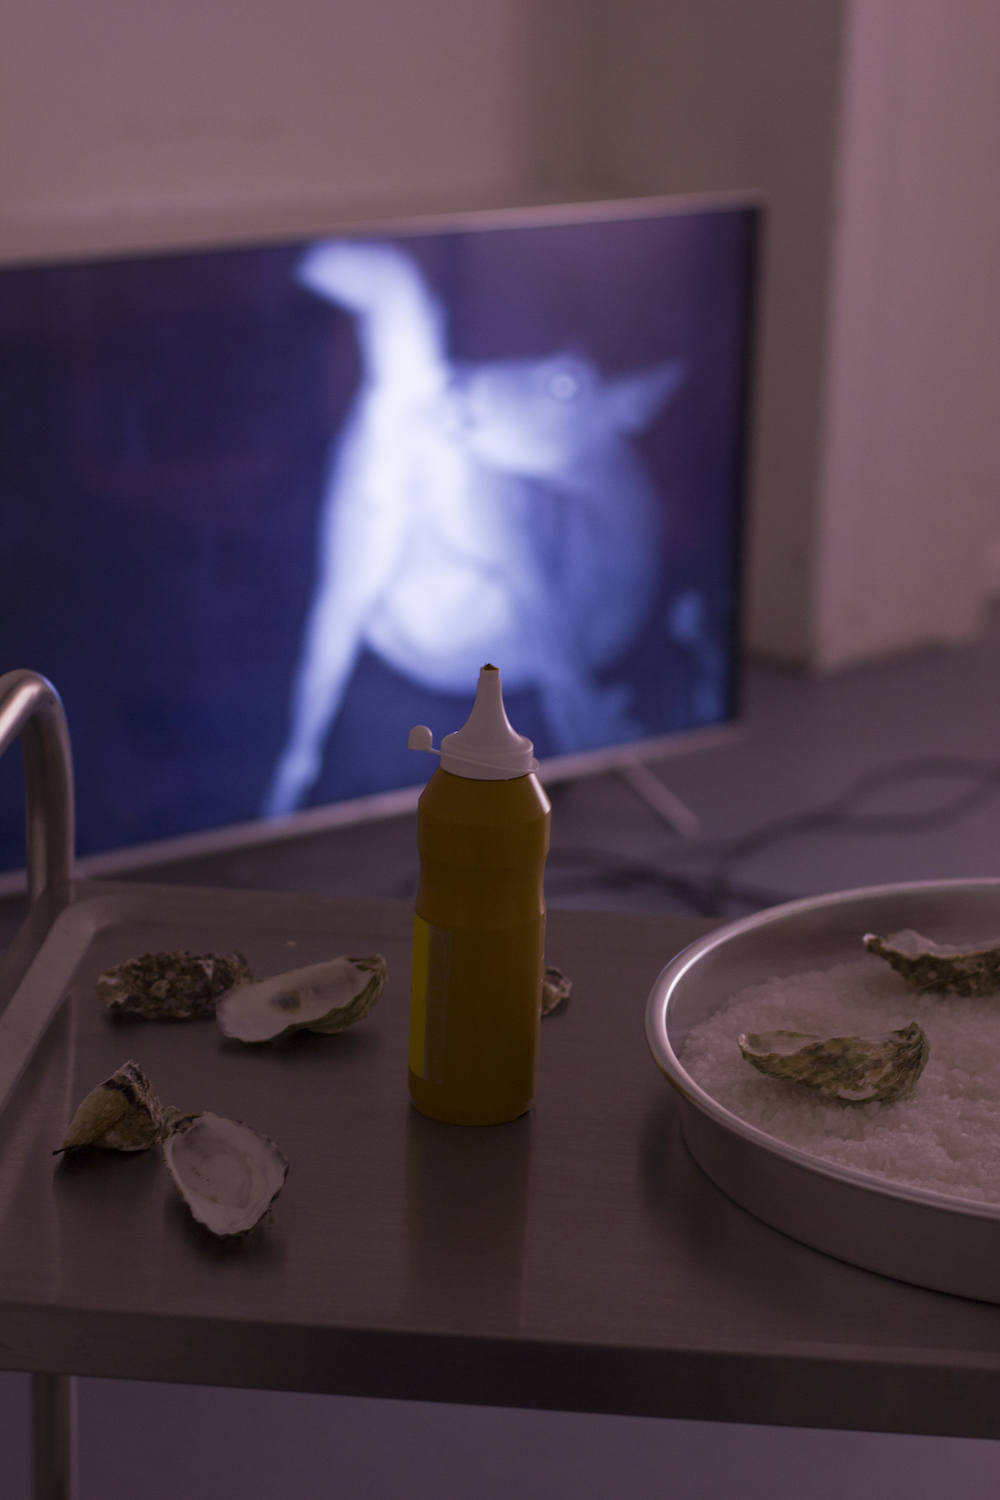 - TV:Isabella HemmersbachVariations on the asshole, 2018digital video, 1min30 (looped)Trolly:Anna Clarisse WæhrensDJ Mustard, 2018Oyster shells, sausages, mustard